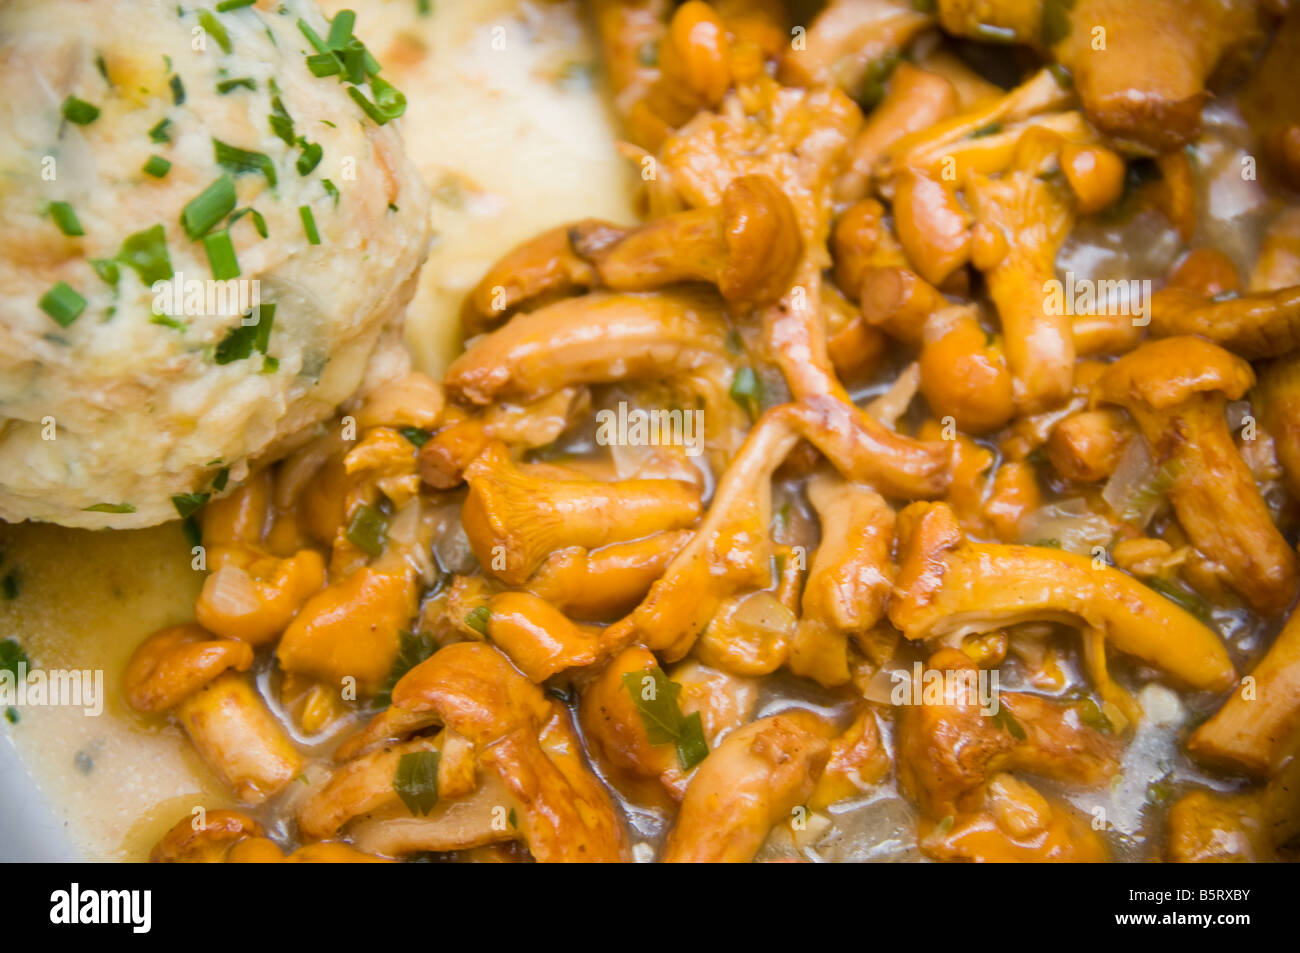 Canederli (Knödel) with chanterelles (finferli) mushrooms. Typical dish from the South Tyrol, Trentino Alto - Stock Image